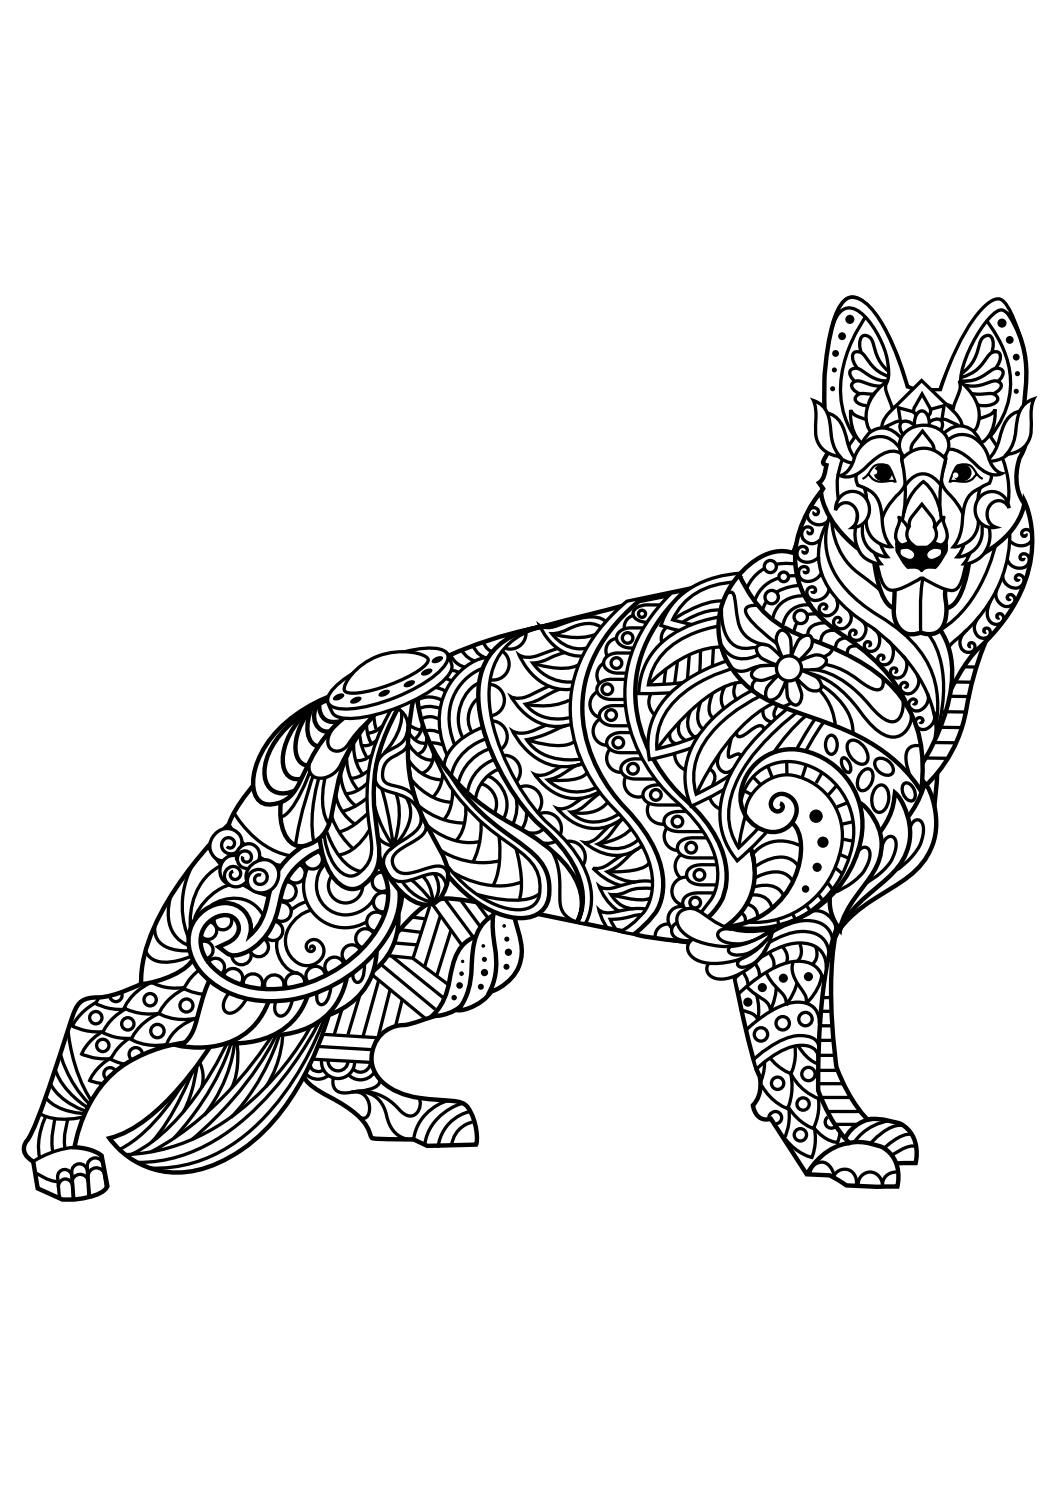 Animal Coloring Pages Pdf Con Imagenes Mandalas Animales